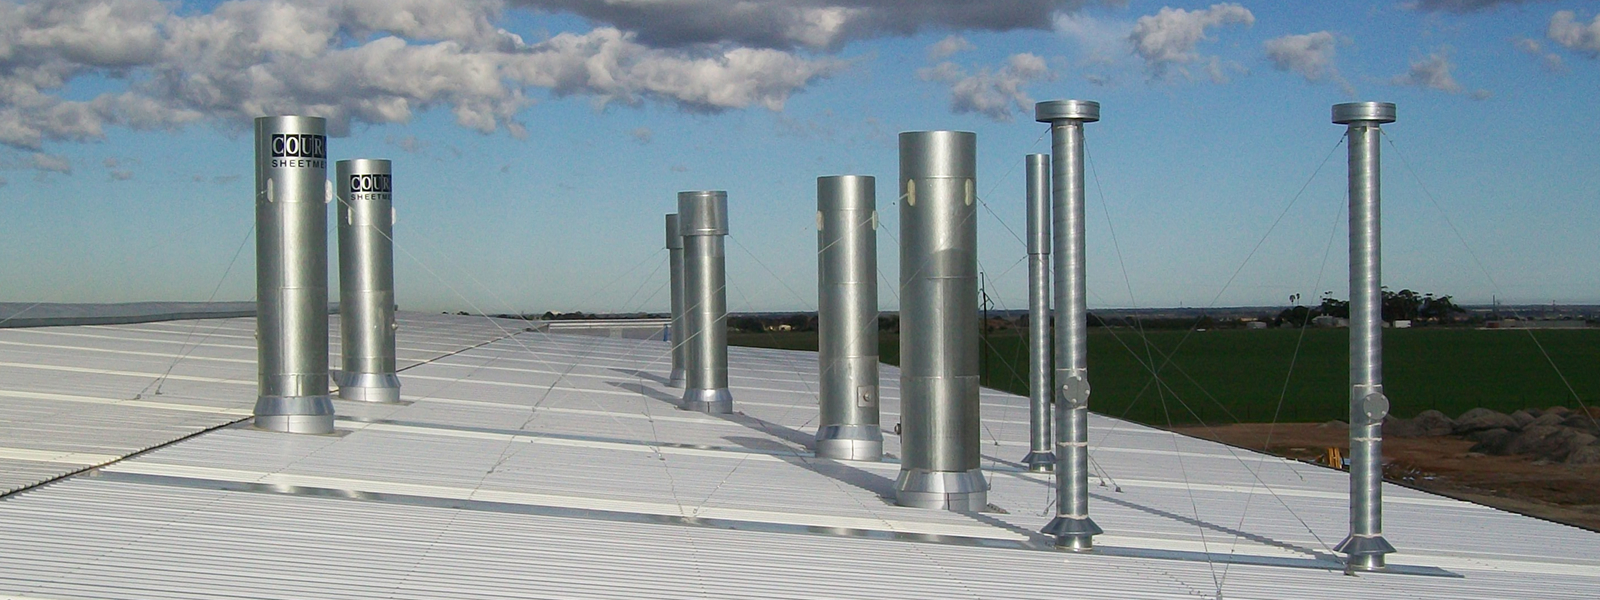 Ductwork and Sheetmetal for spraybooths